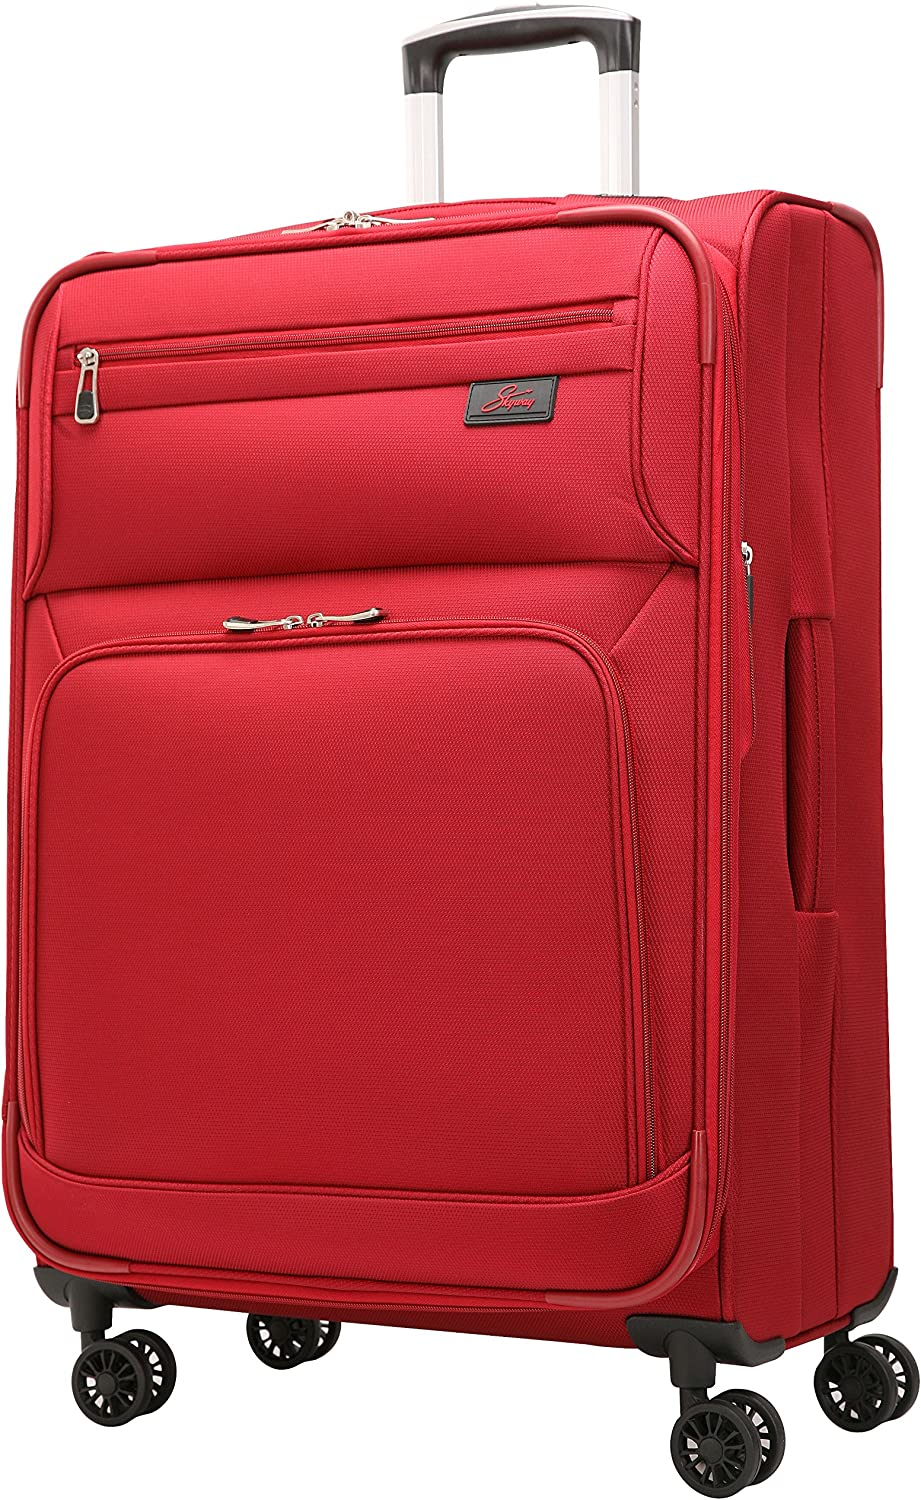 Merlot Red Skyway Sigma 5.0 29-Inch 4 Wheel Expandable Upright